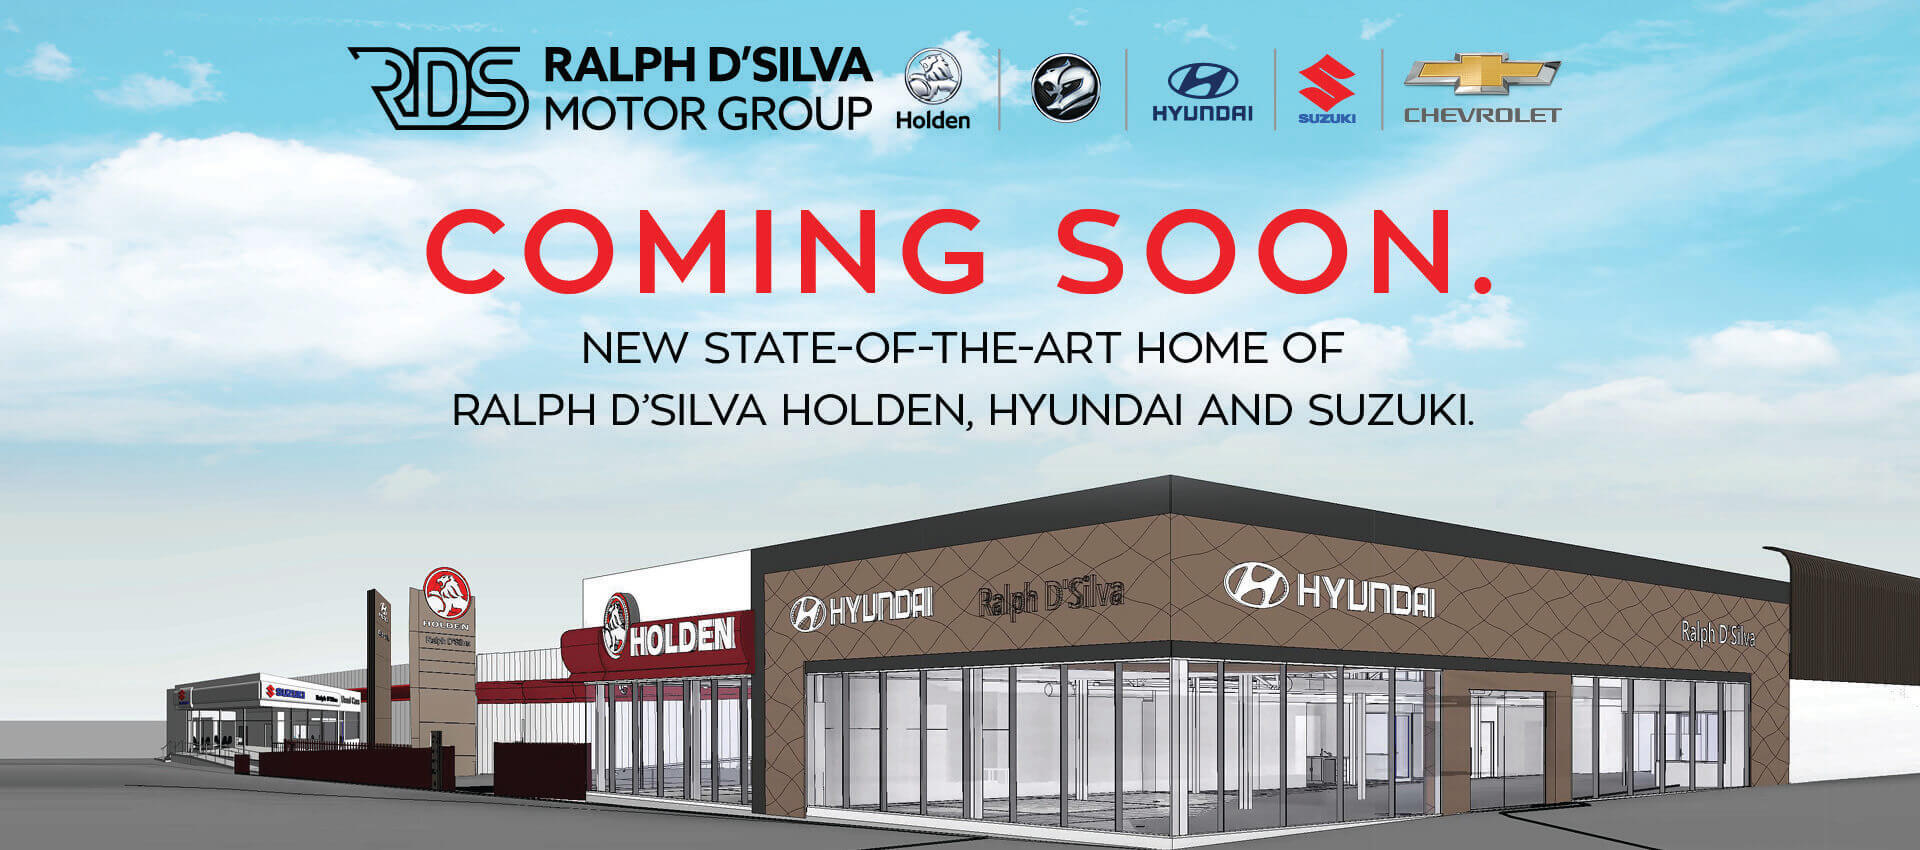 New Home of Ralph DSilva